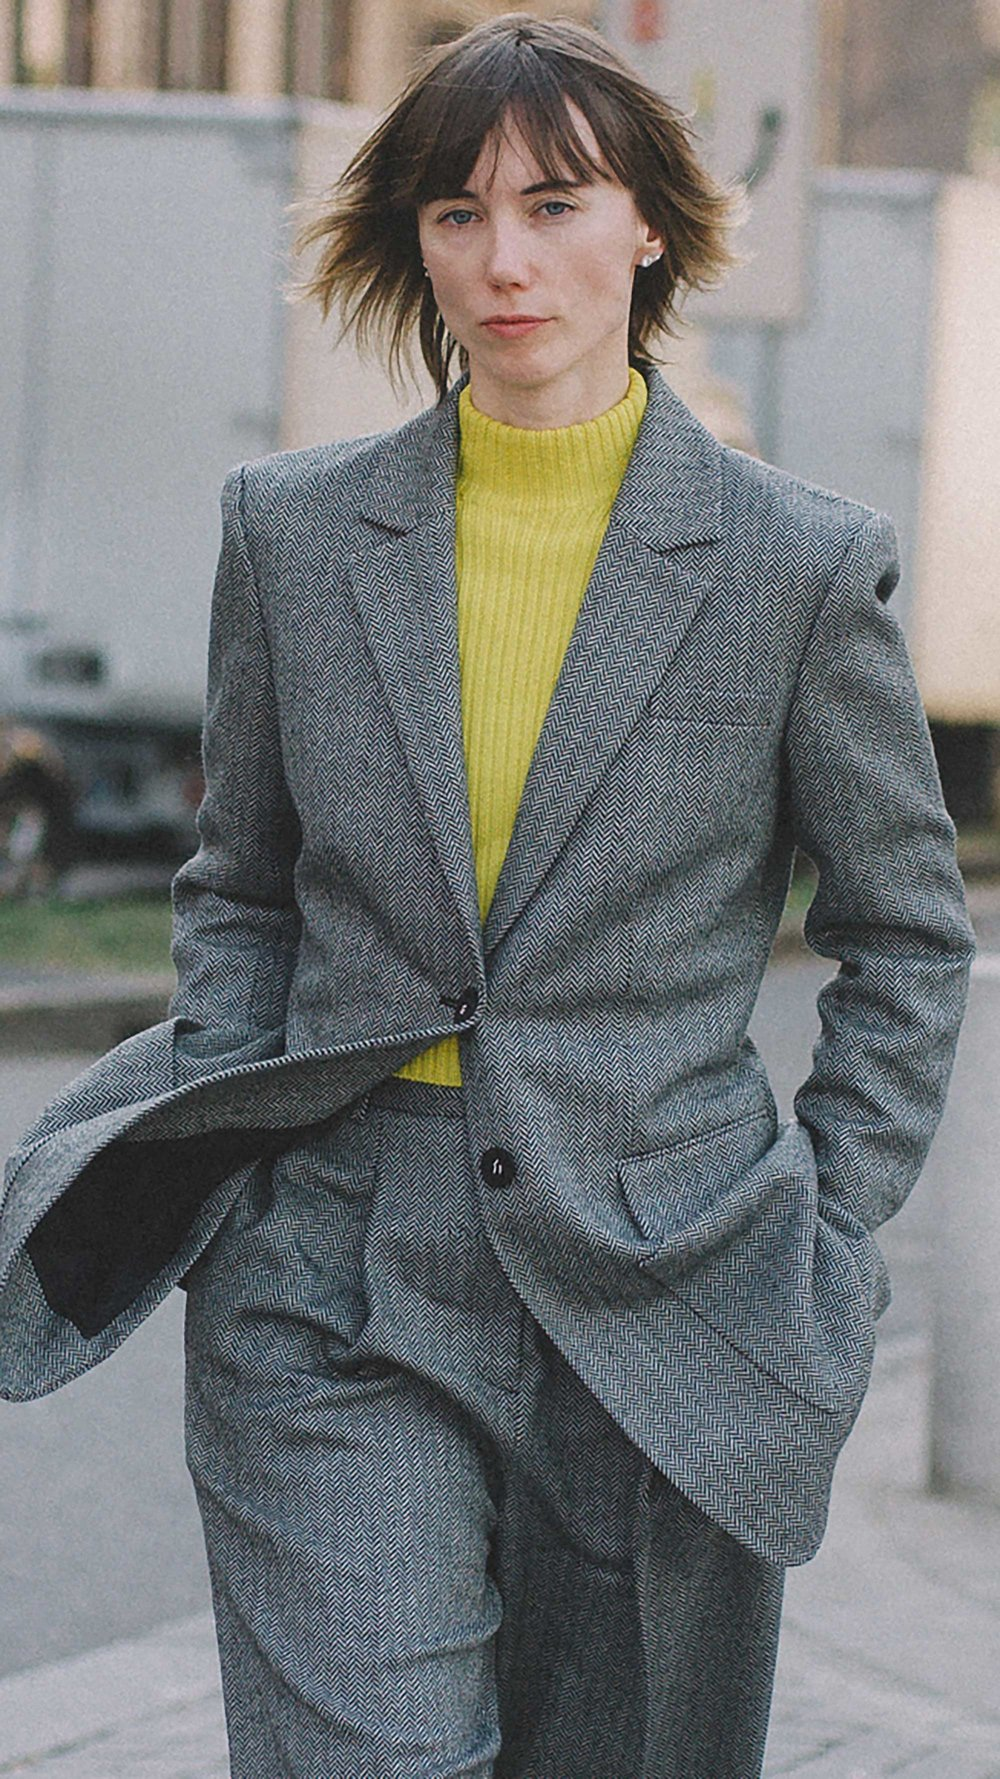 est outfits of Milan Fashion Week street style day two MFW FW19 52.jpg